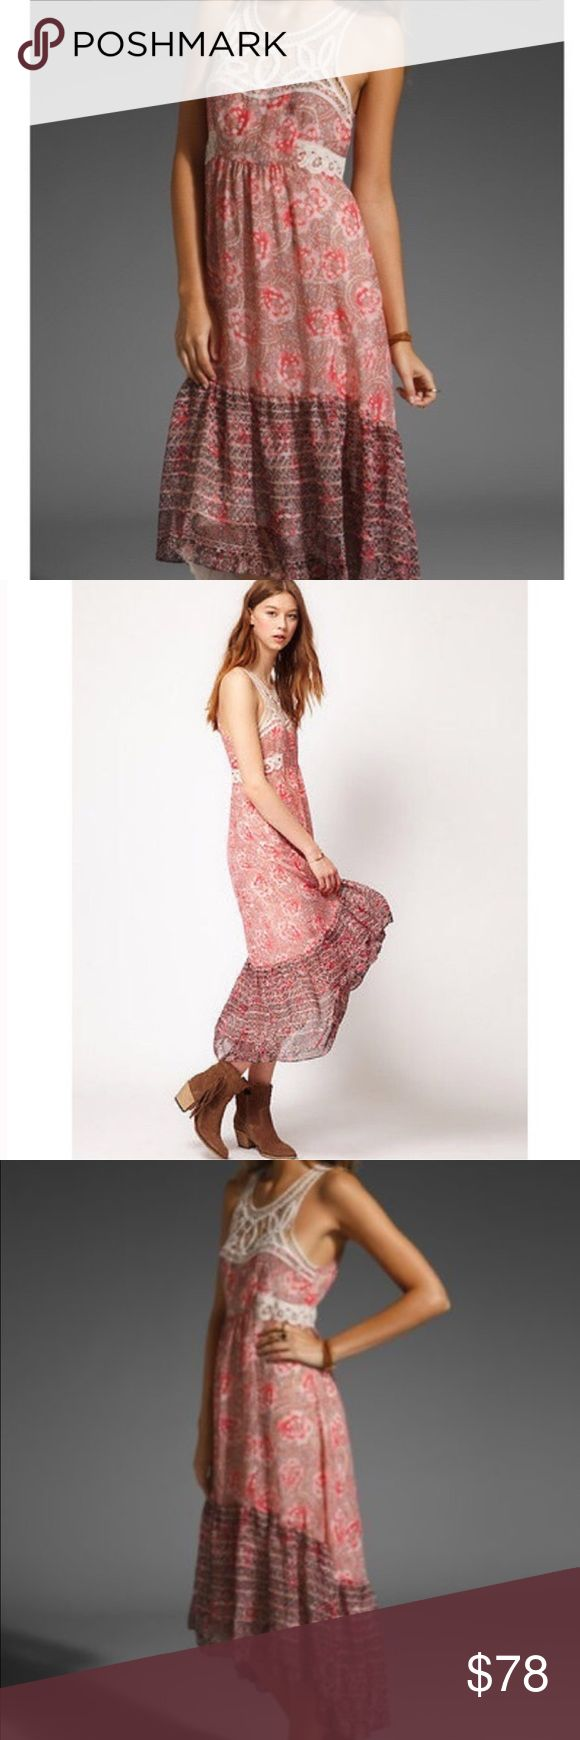 • FREE PEOPLE • native rose maxi dress Gently worn Free People native rose maxi dress. Size 0. Only worn a few times! Absolutely gorgeous! Flowy, feminine & great for summer! Zipper back. Asymmetrical hem. Lace detail at neckline & waist. Remember to bundle & save 15%! 💕 Offers welcome! Free People Dresses Maxi